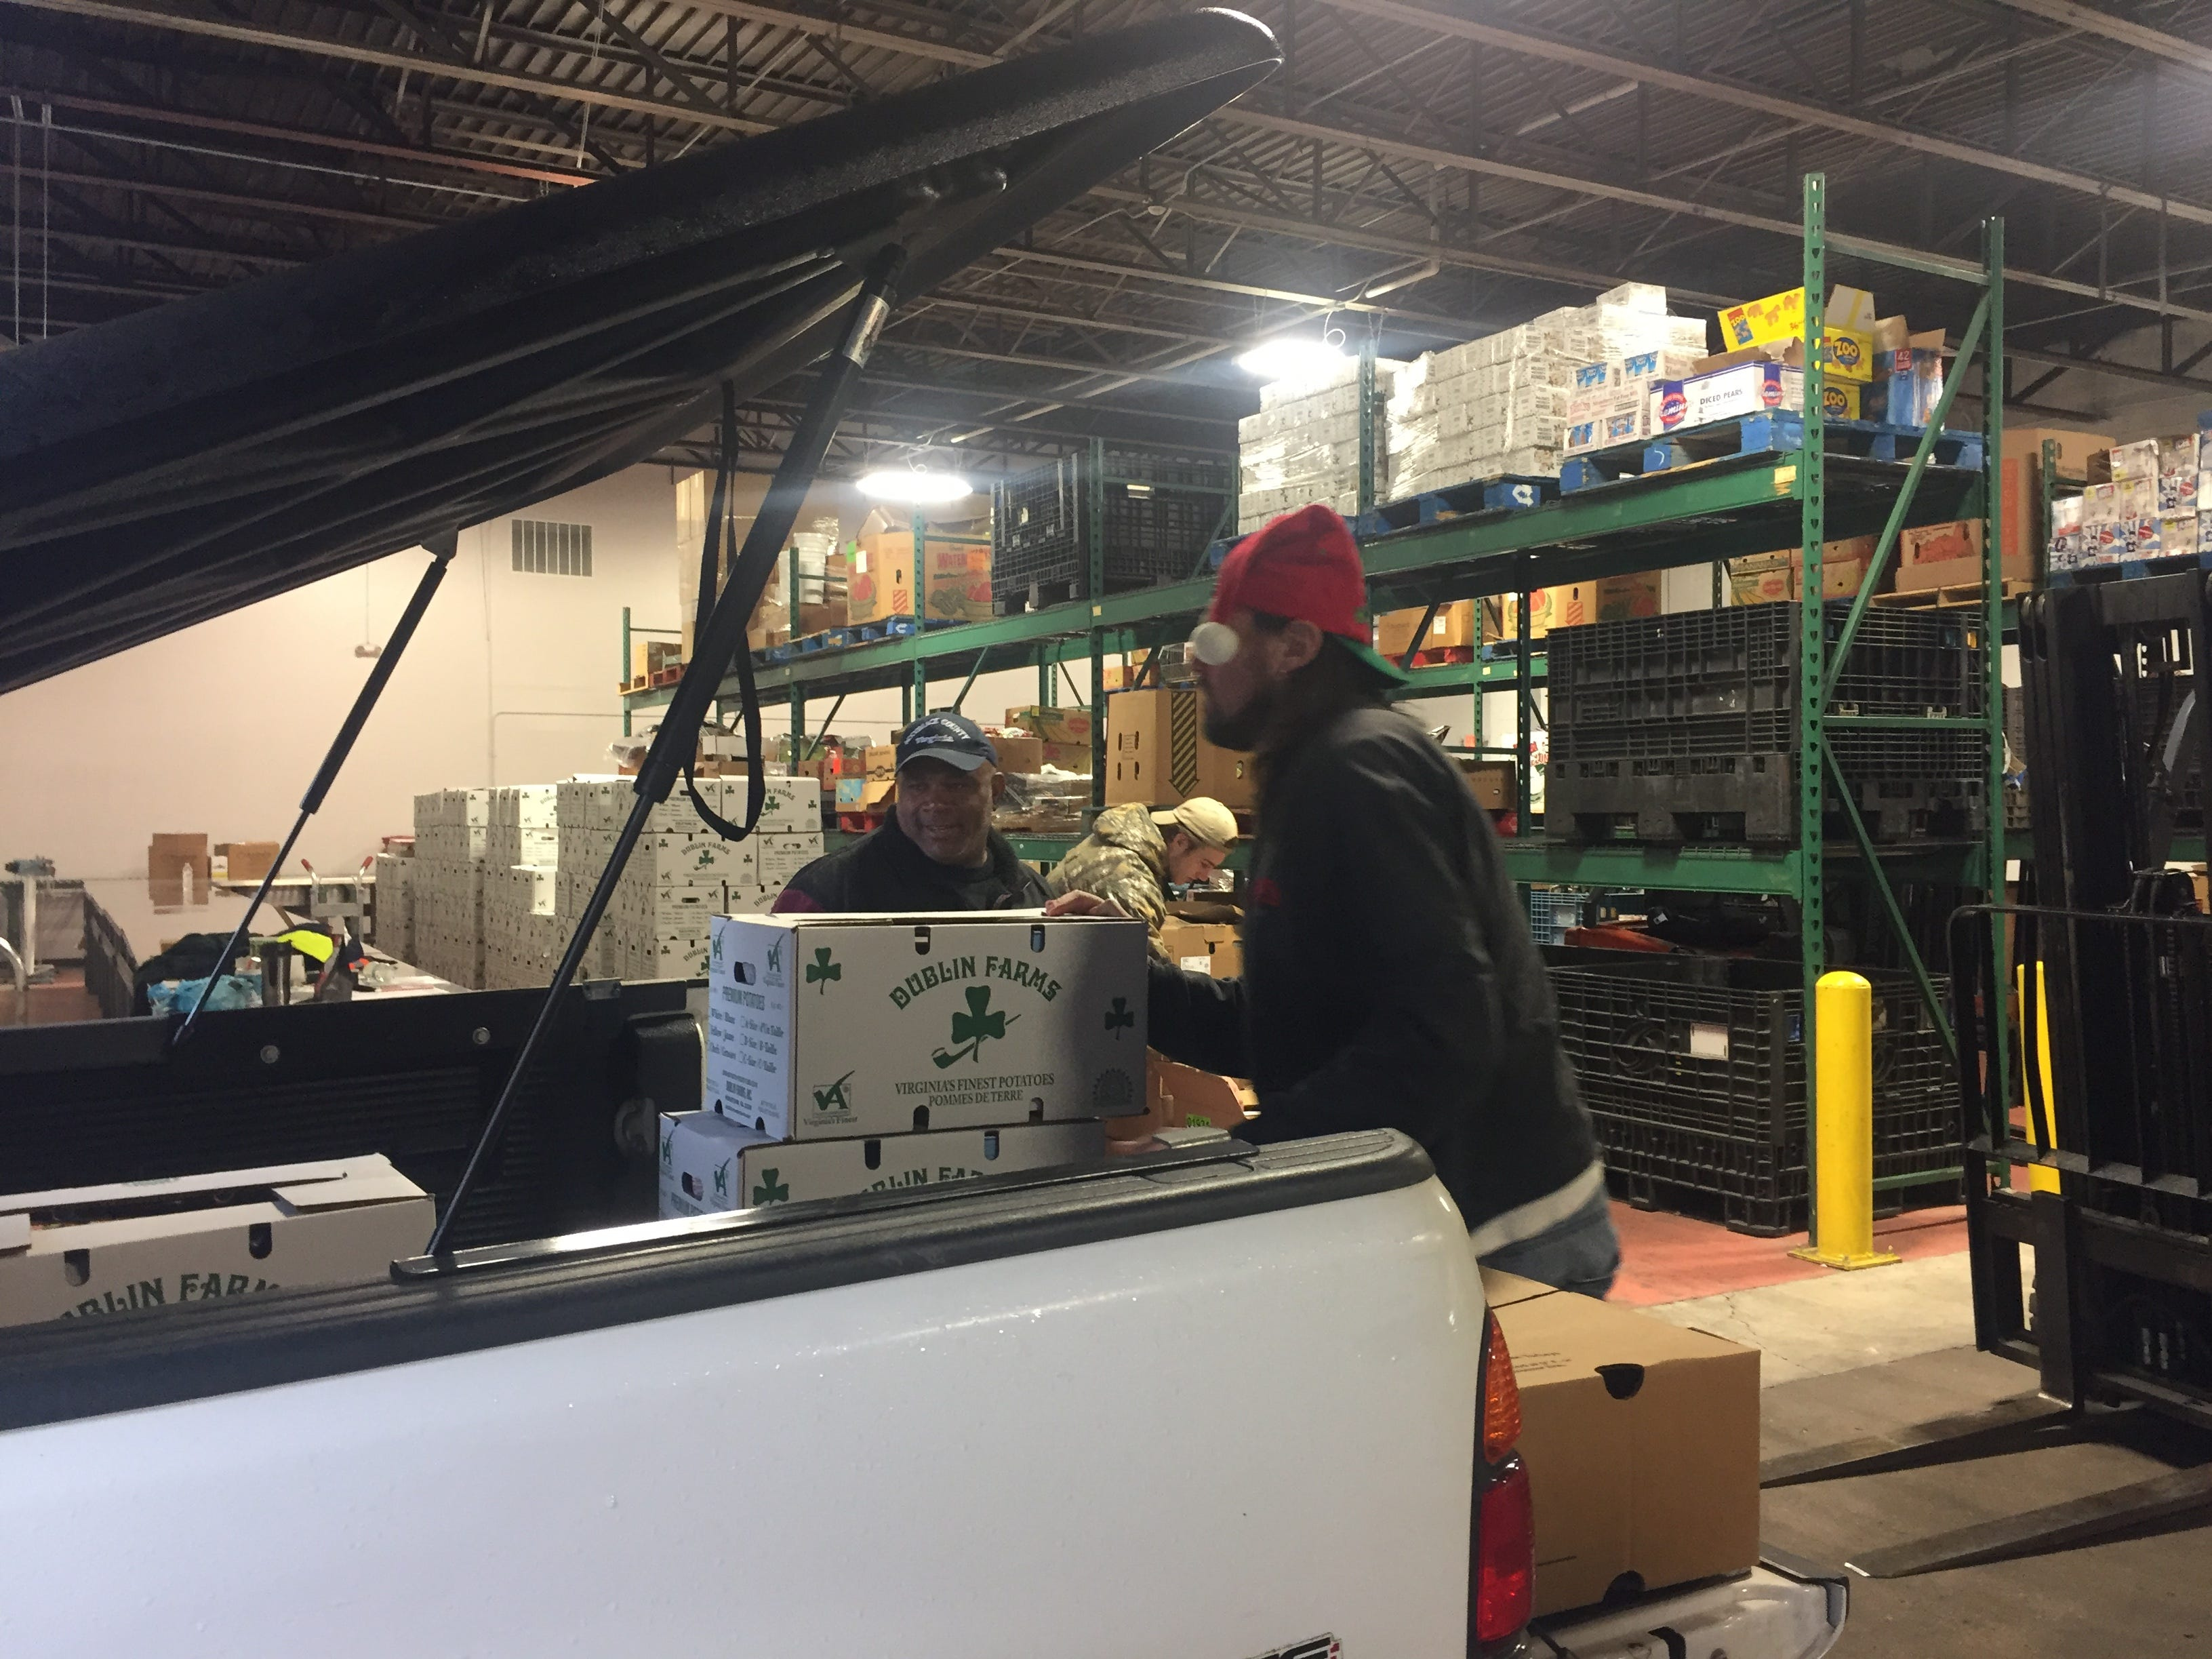 Volunteers load some of the 200 boxes of food being delivered to Eastern Shore of Virginia residents for the Eastern Shore News' 58th Annual Bank of Cheer campaign in Tasley, Virginia on Thursday, Dec. 20, 2018.